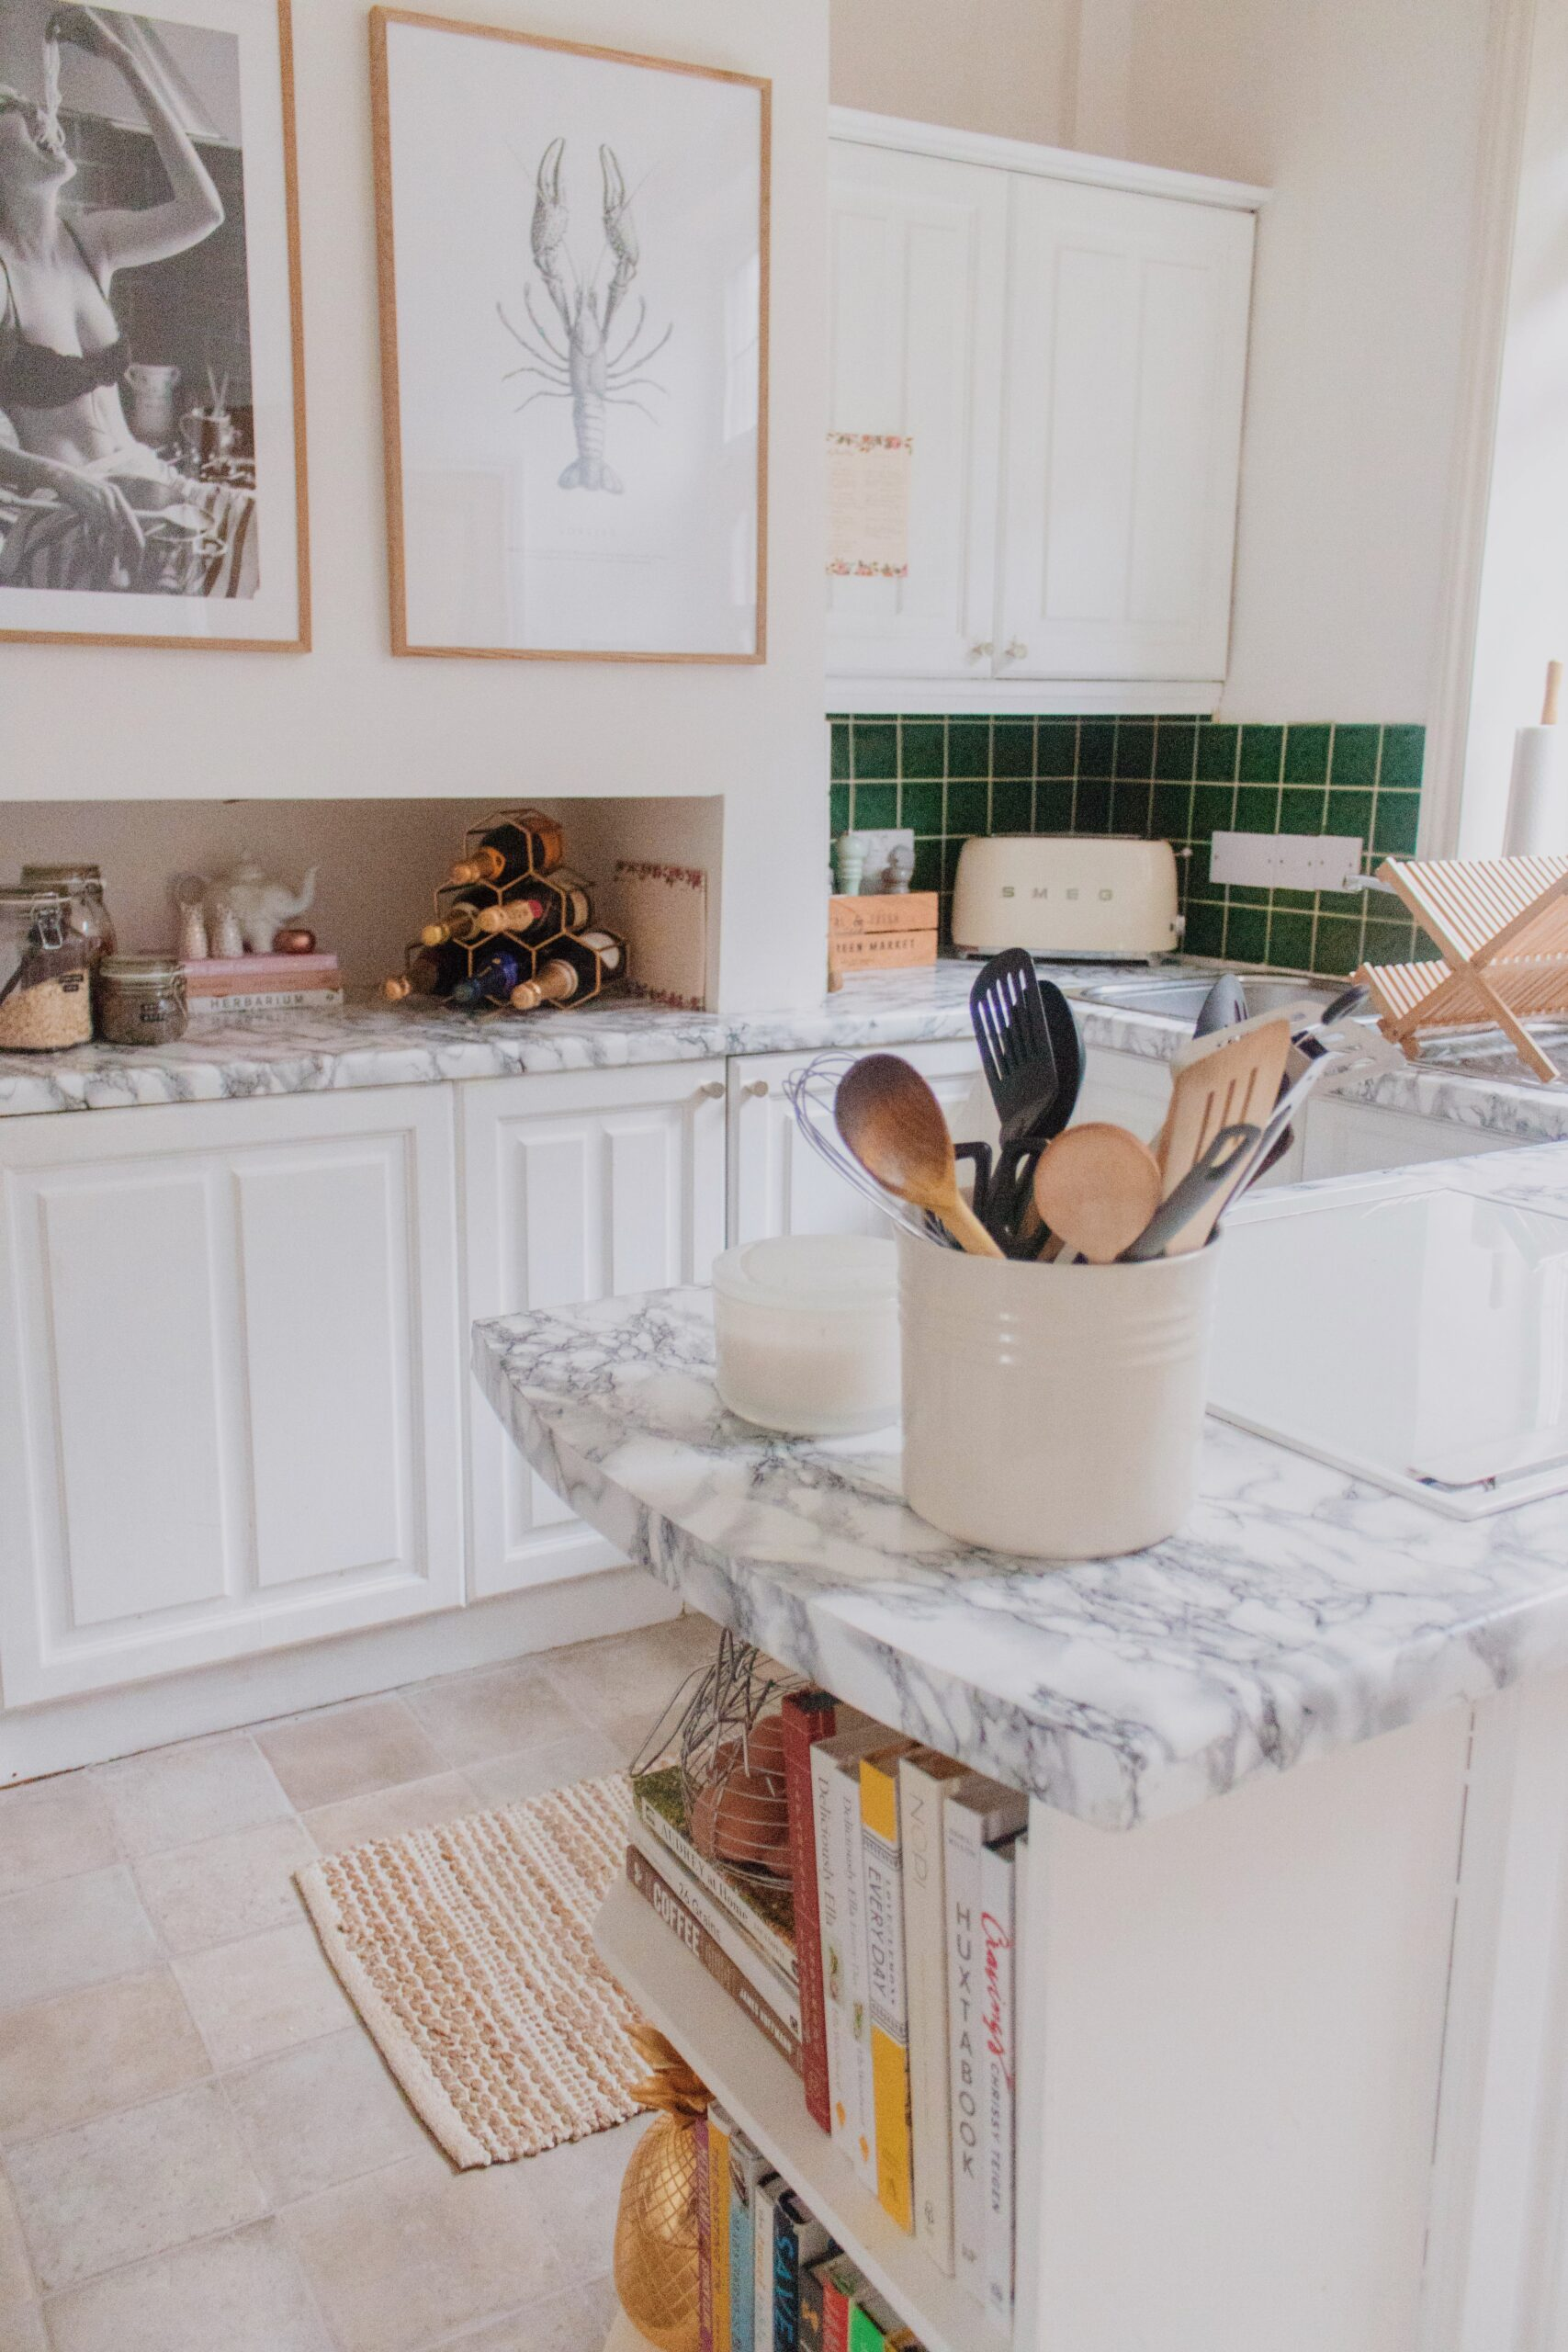 Using Contact Paper in Your Rental Kitchen & How it's Worn 12 Months Later